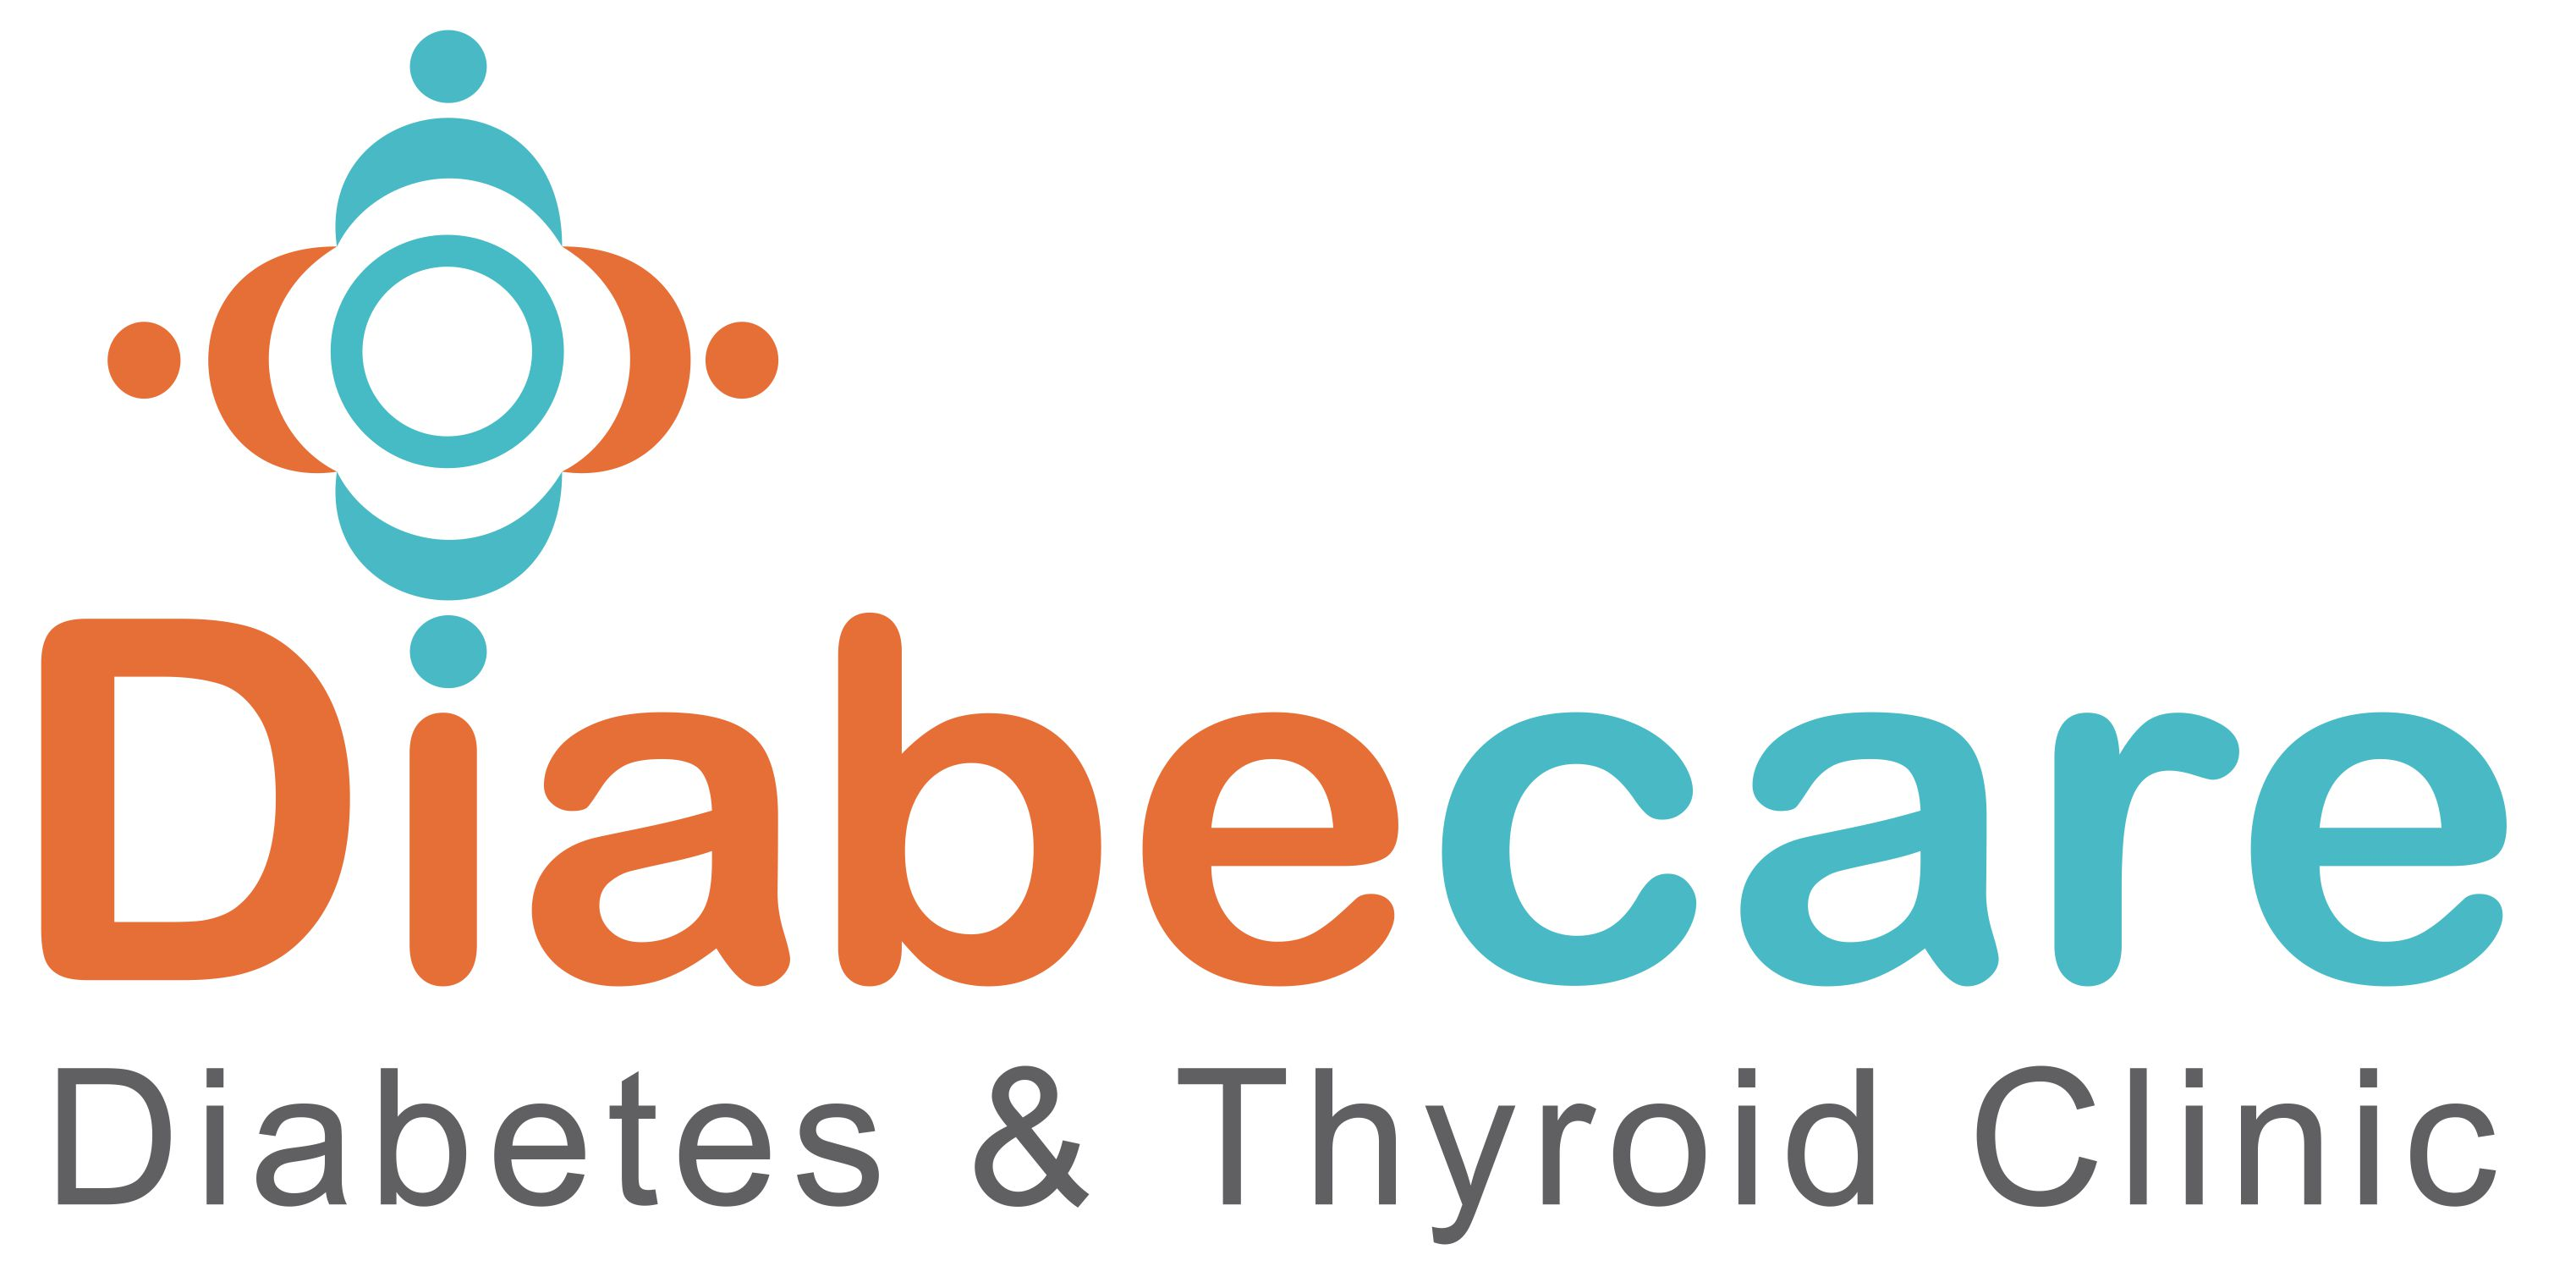 Diabecare Diabetes And Thyroid Clinic